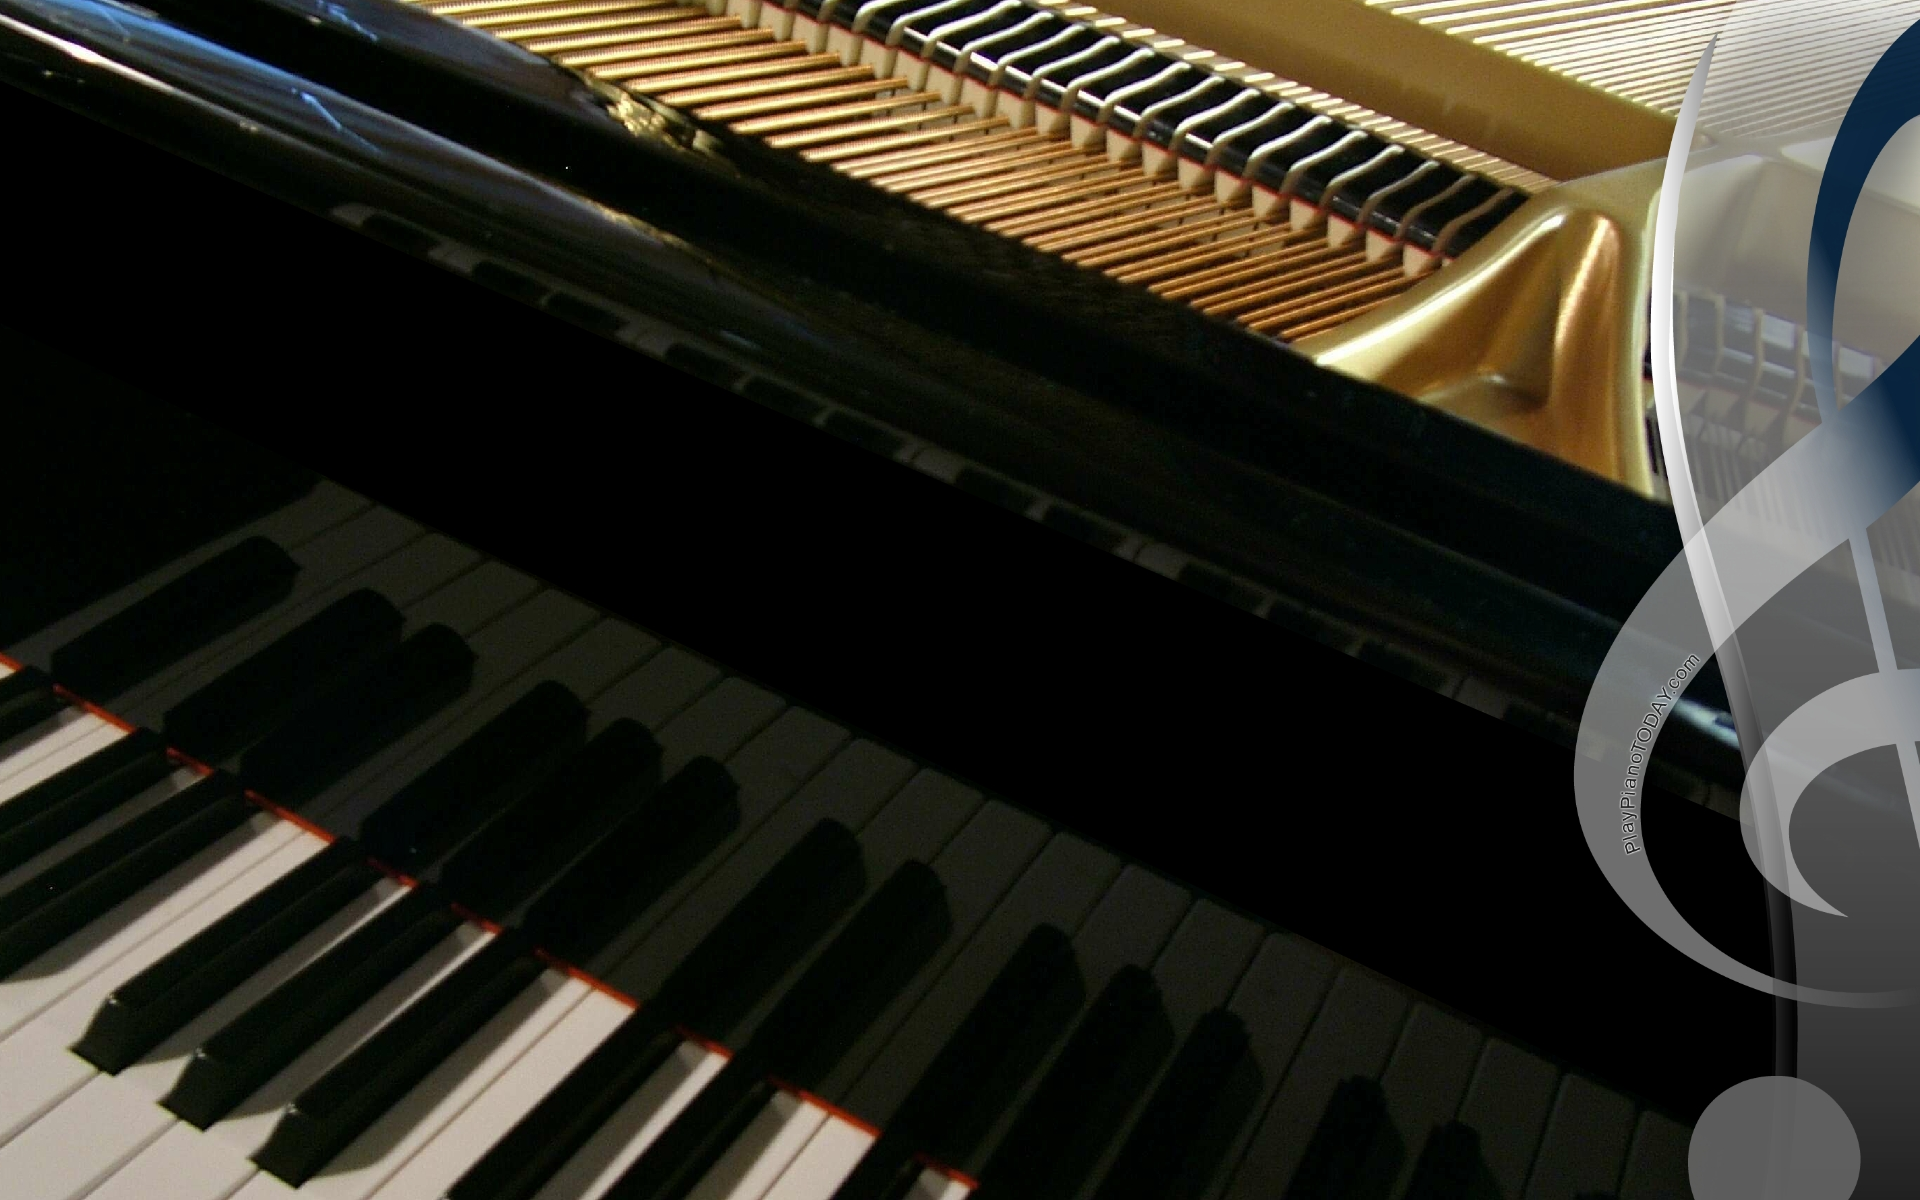 Baby Grand Piano Wallpaper Wallpapersafari